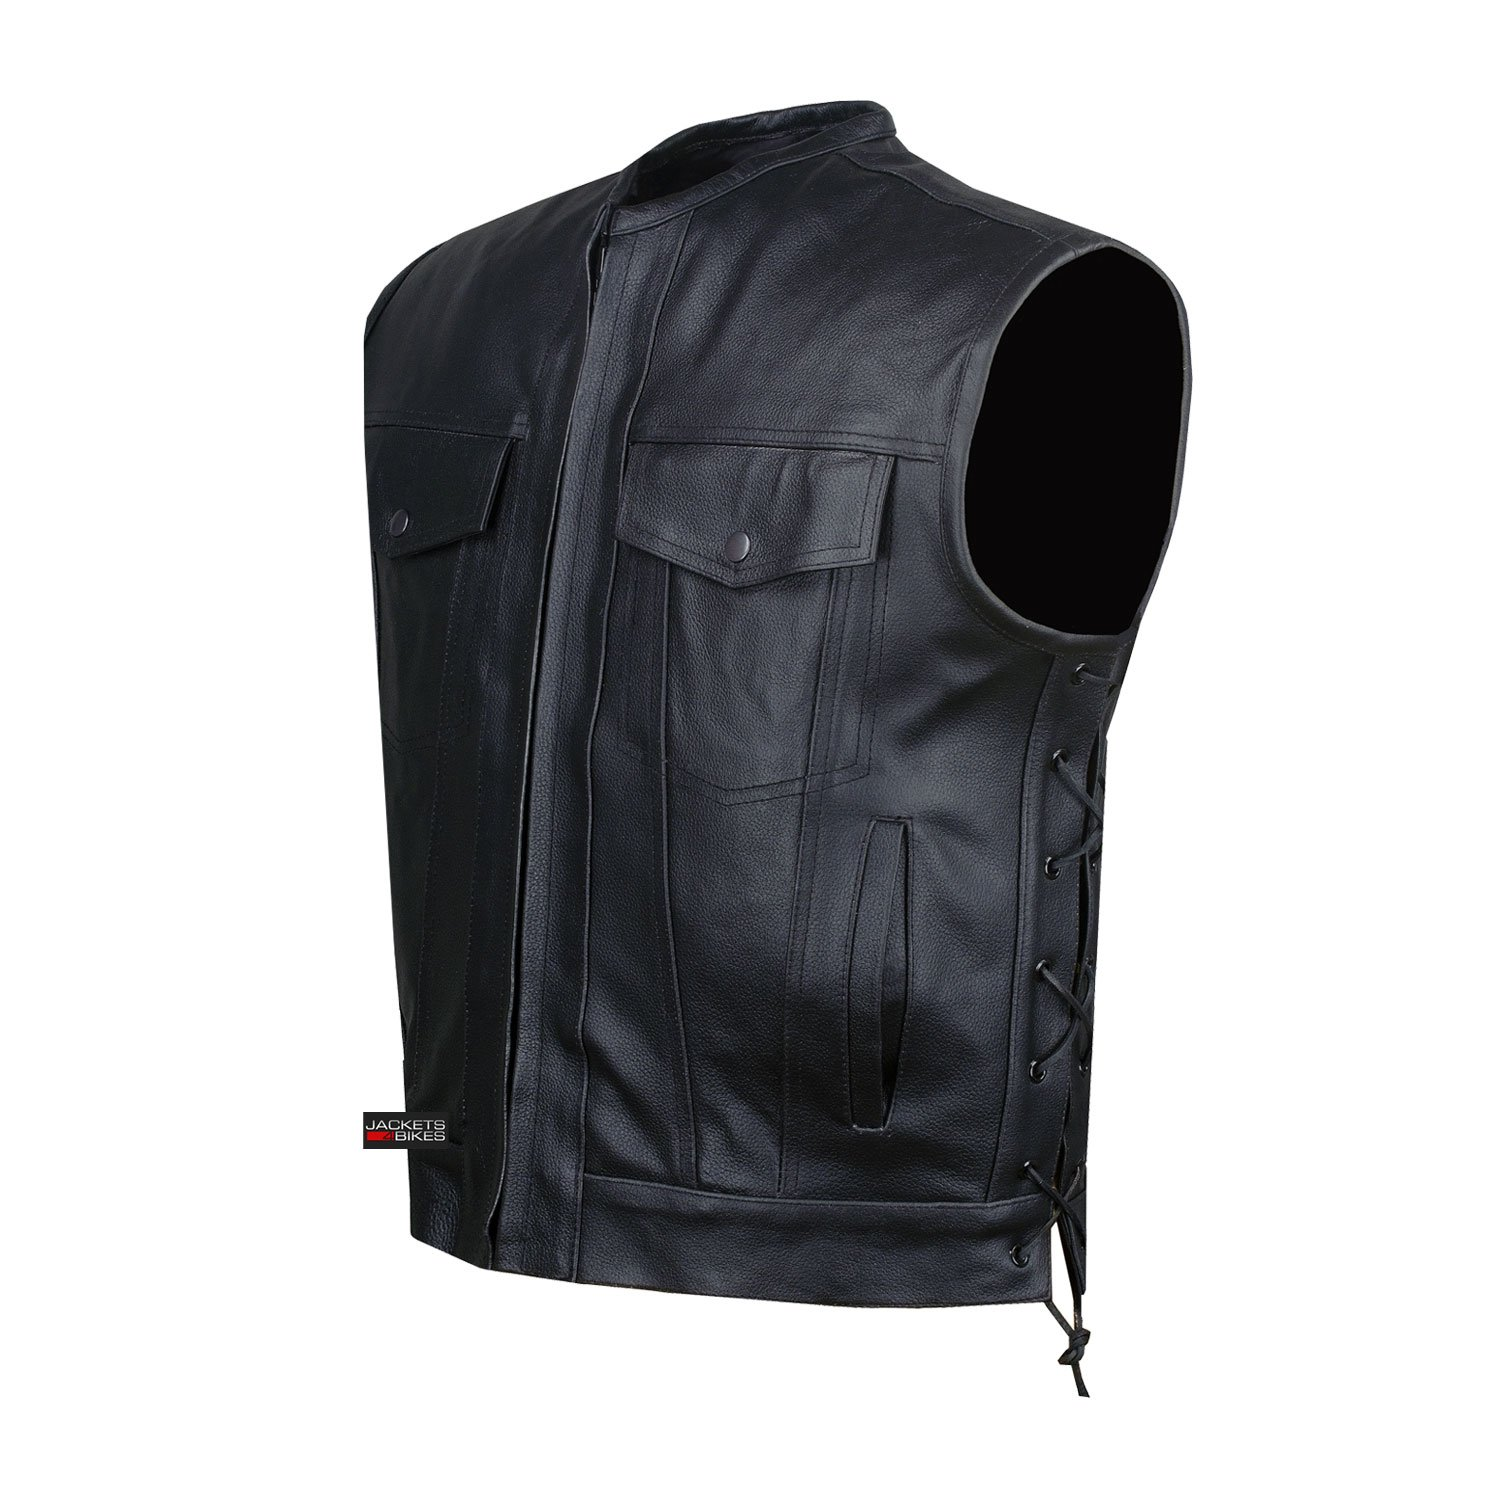 SOA Motorcycle Sons of Anarchy ARMOR Leather Open Collar Club Biker Vest M